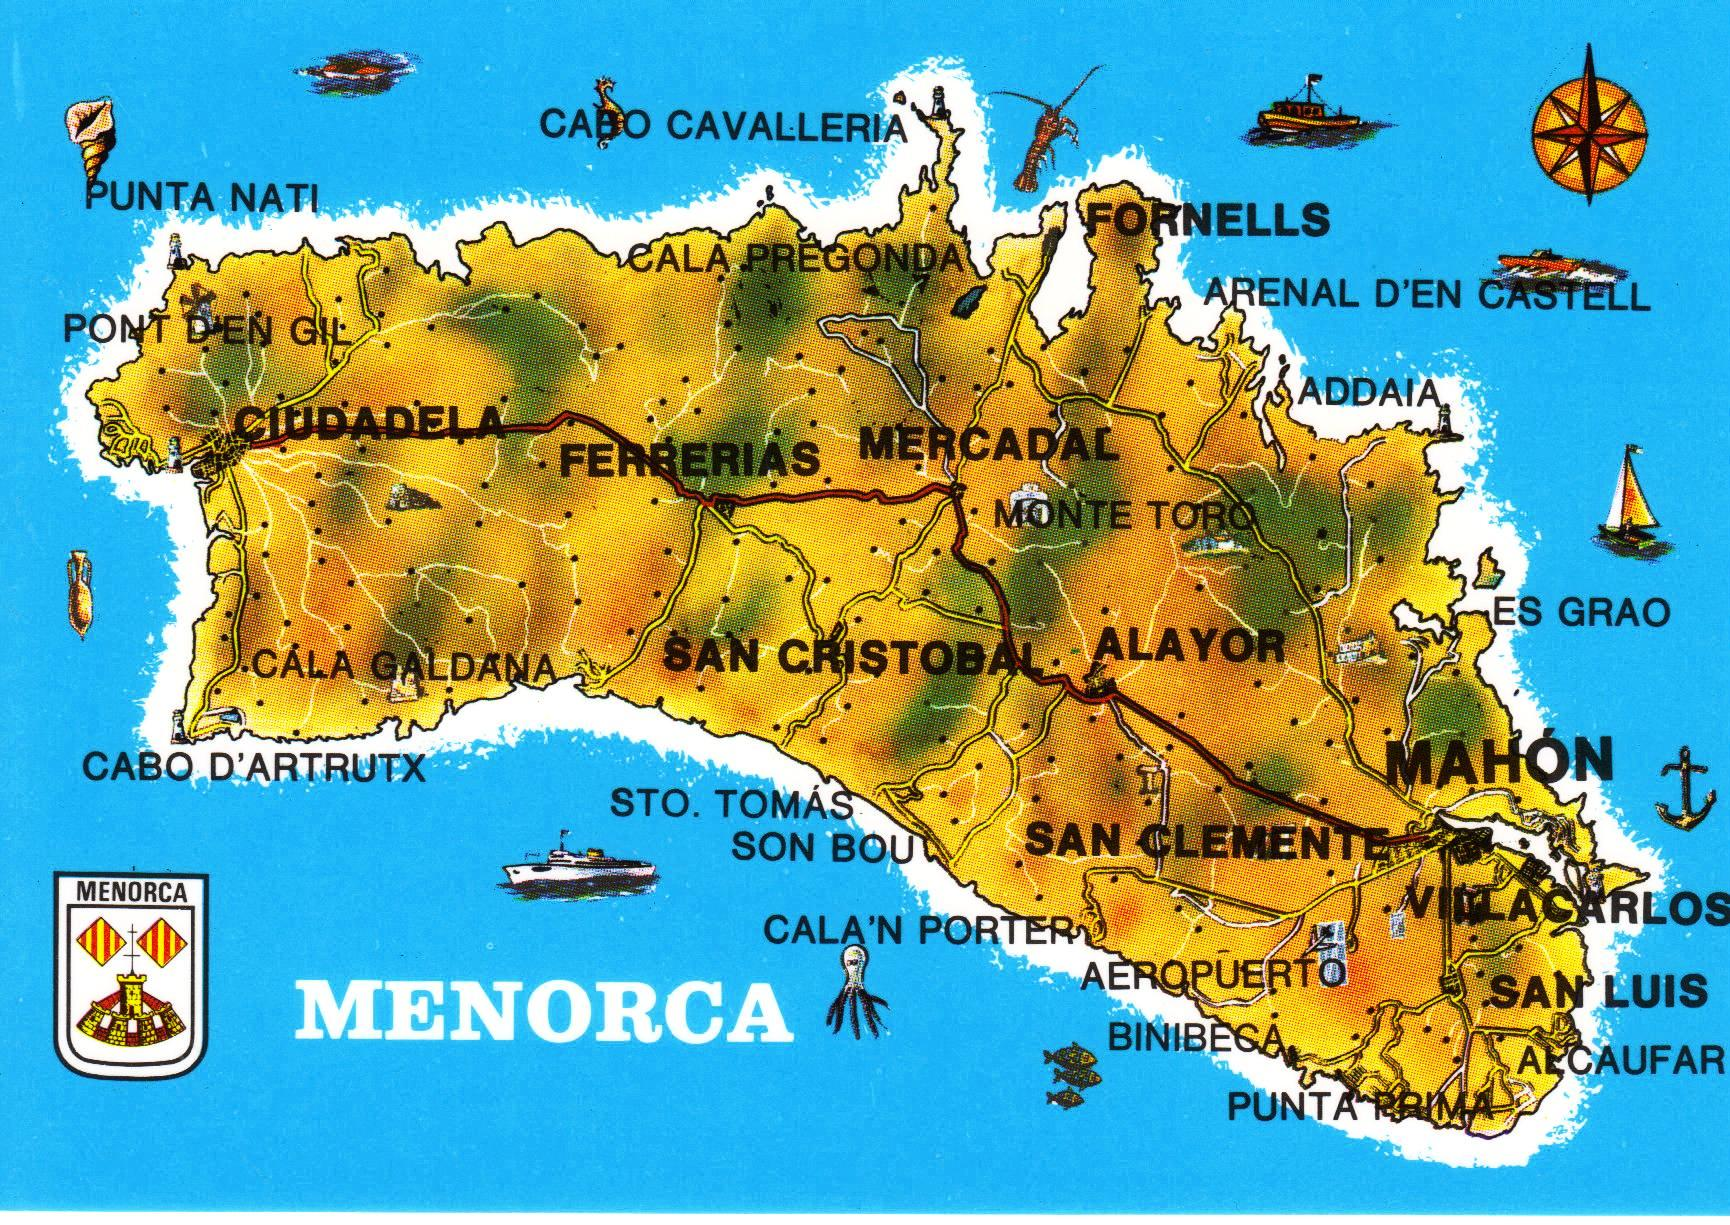 More postcard maps spanish islands have bag will travel minorca island map postcard gumiabroncs